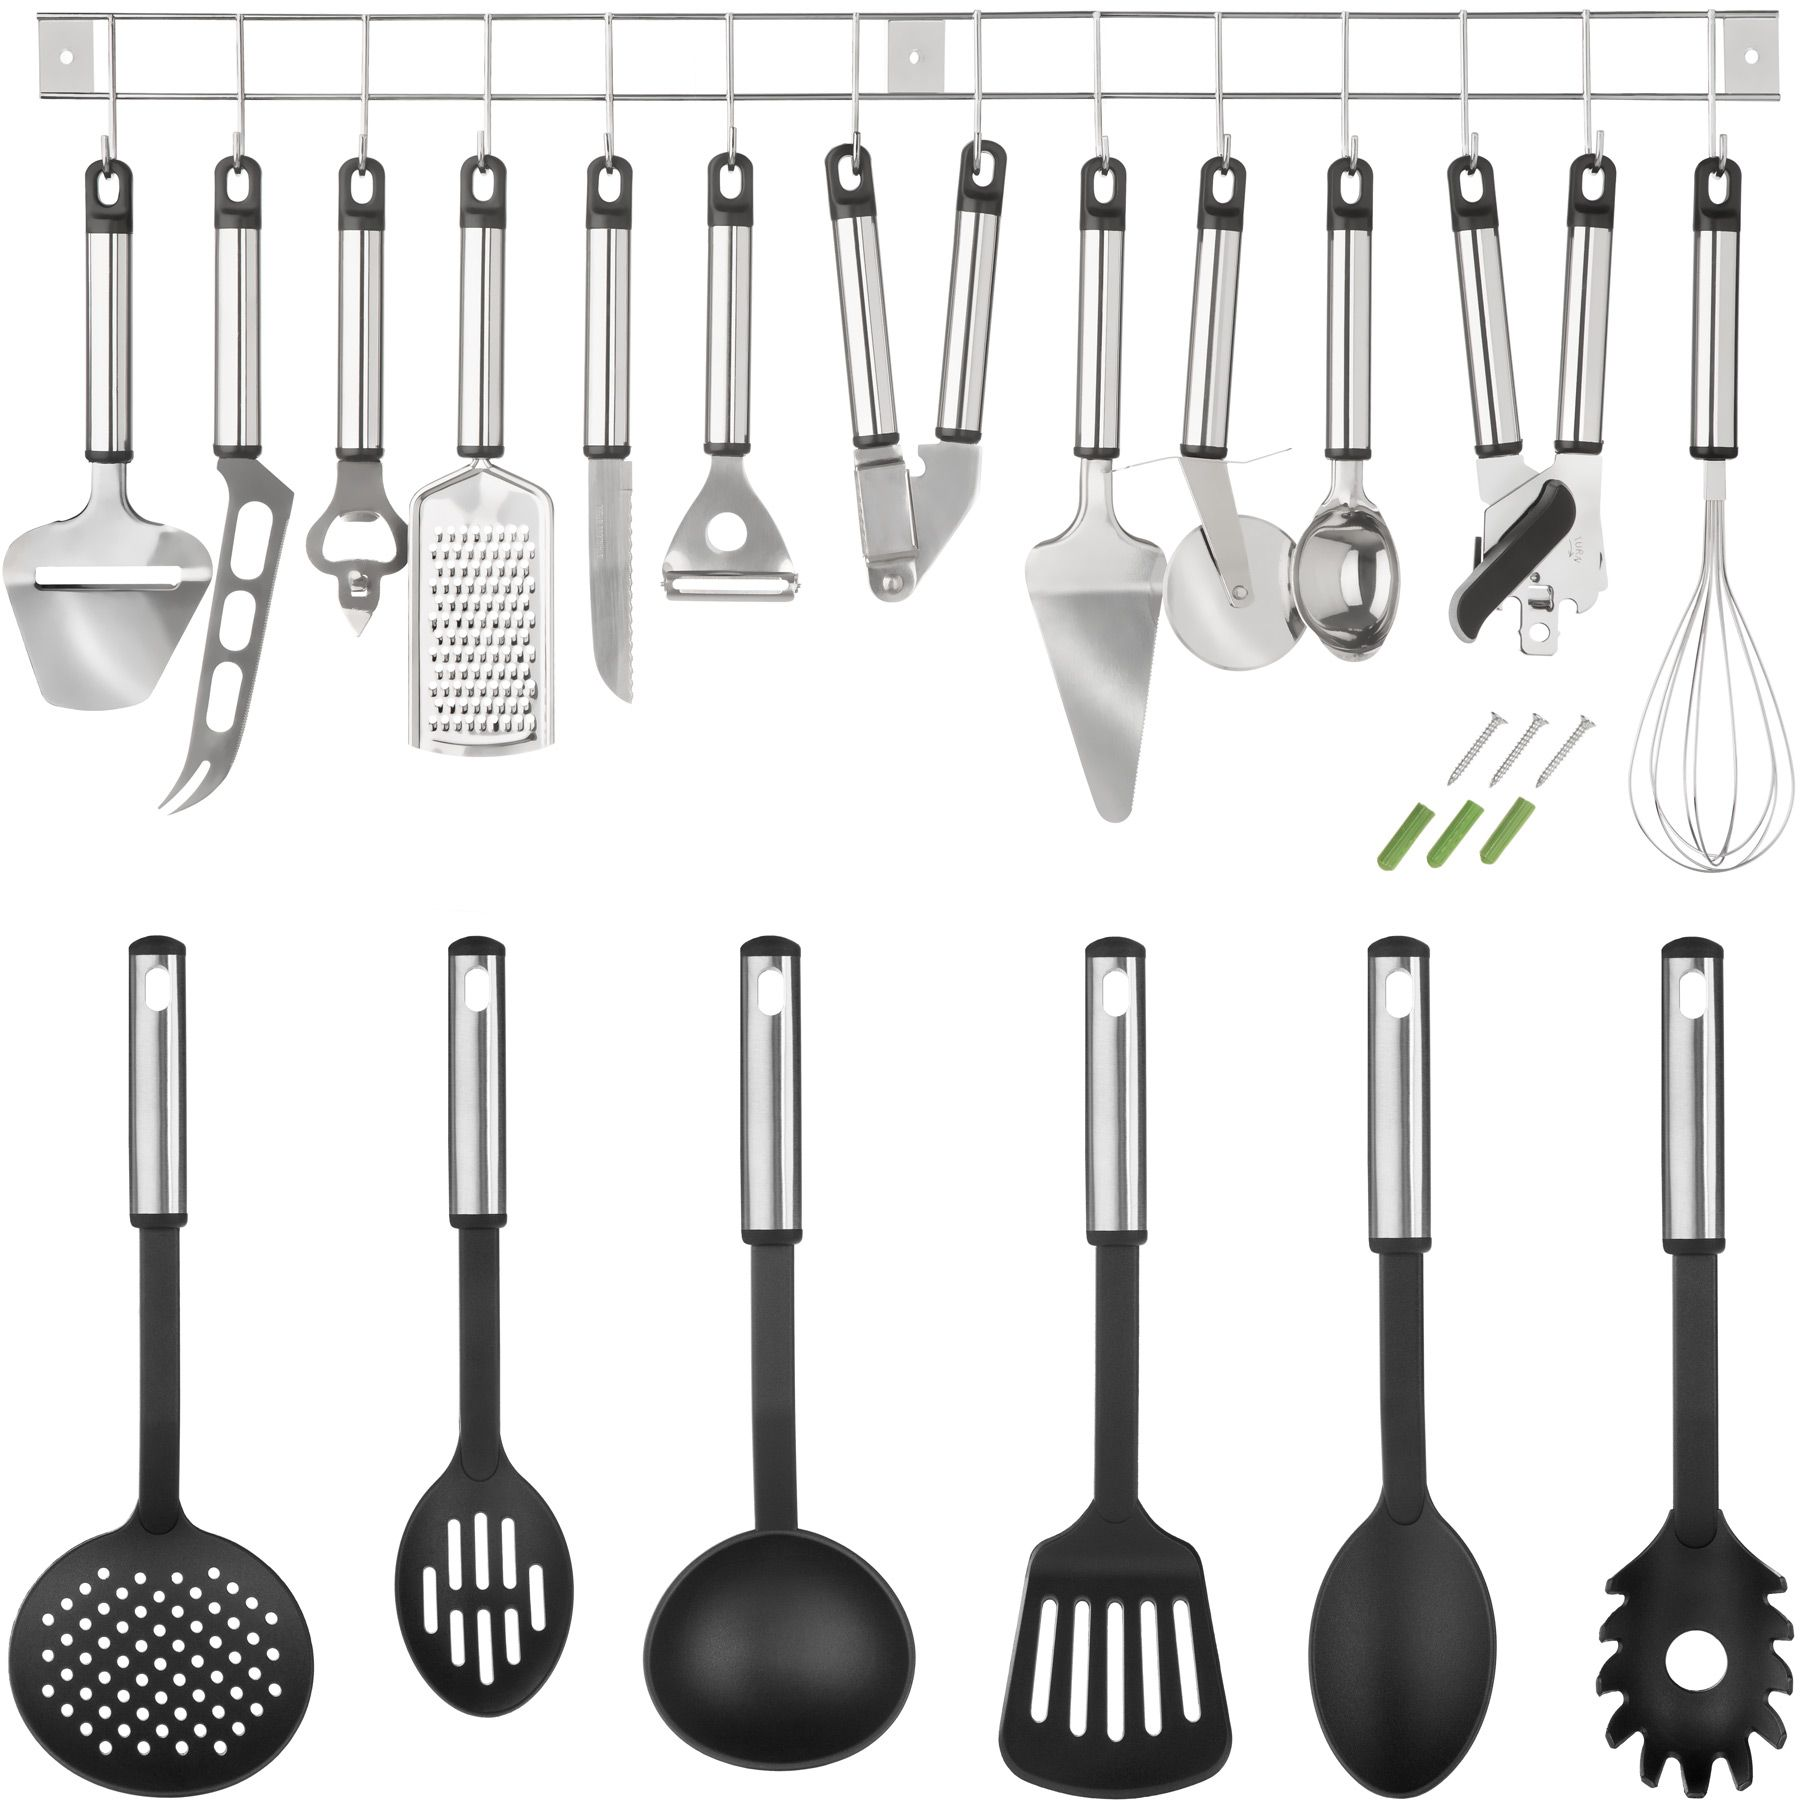 ustensiles de cuisine lot de 19 pi ces accessoires set en acier inoxydable ebay. Black Bedroom Furniture Sets. Home Design Ideas